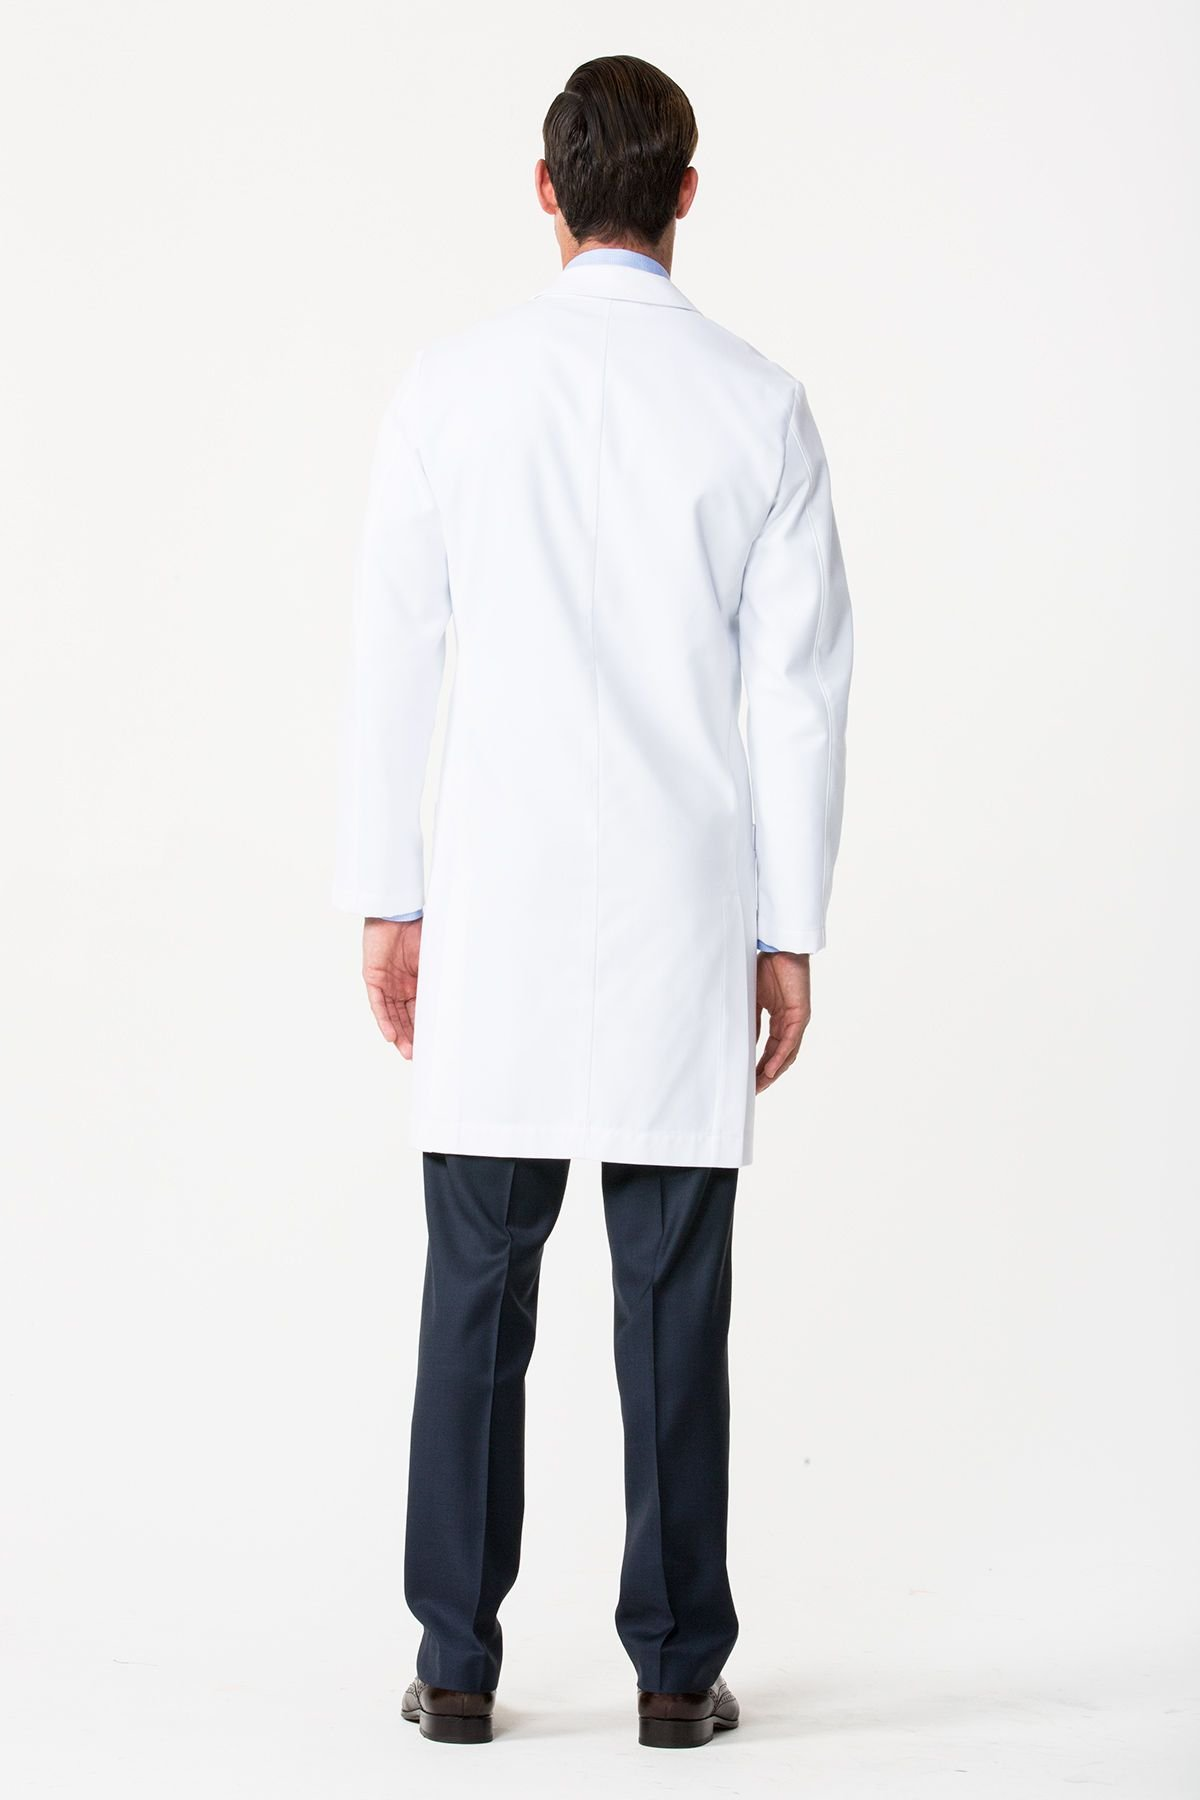 Men's E. Wilson Slim Fit M3 White Lab Coat- Professional Fit With Performance Fabric - Size 36 by Medelita (Image #2)